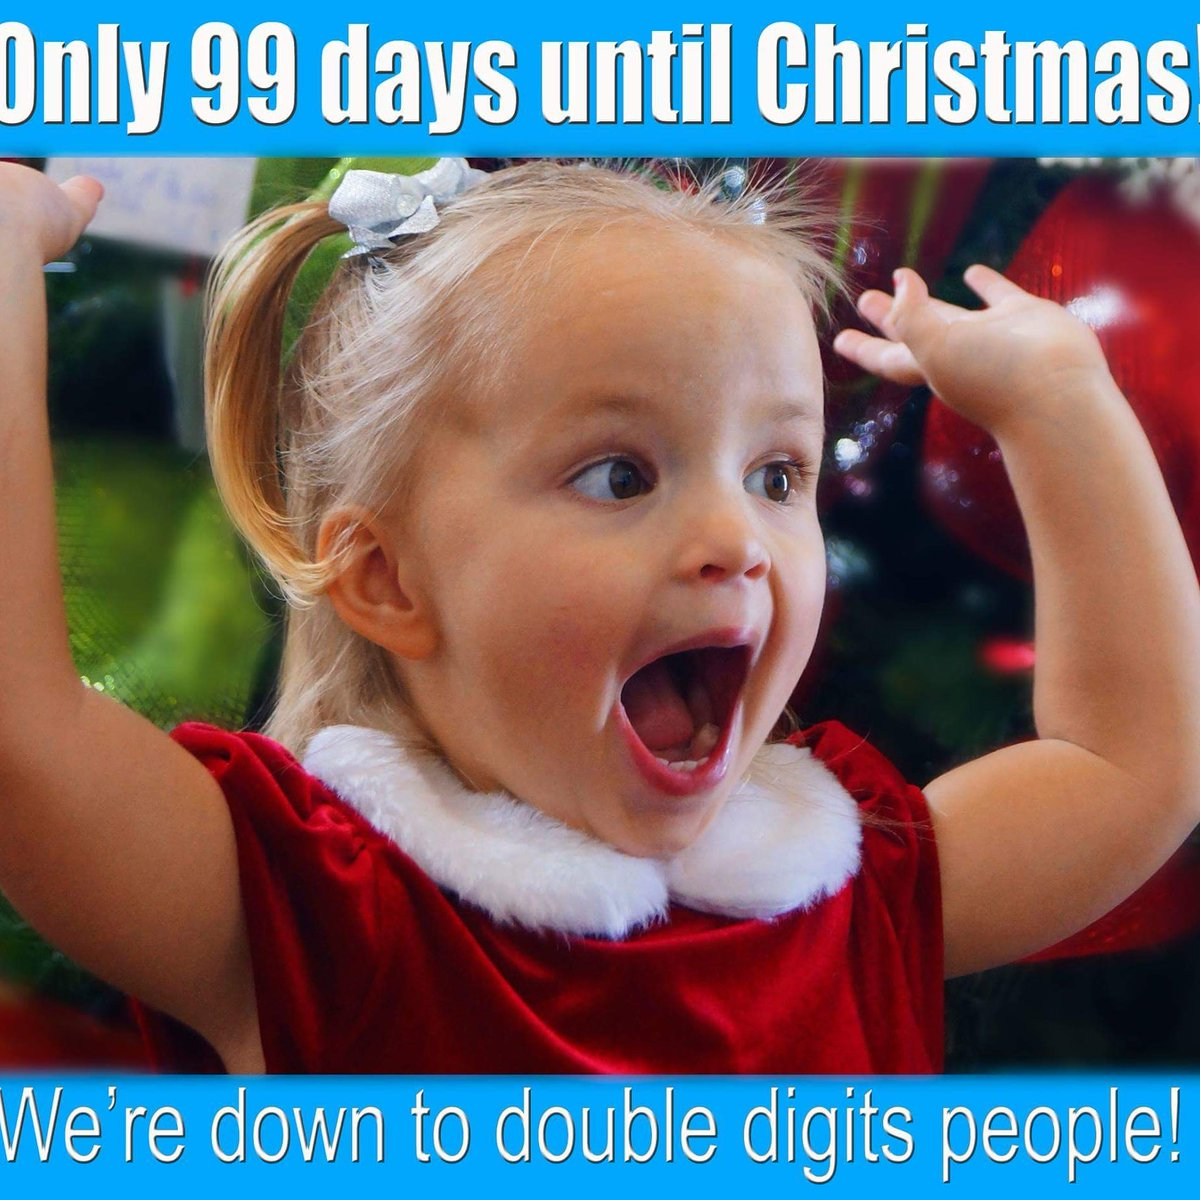 Until Christmas 99 Days Till Christmas.Brenda Carey On Twitter Less Then 100 Days Till Christmas